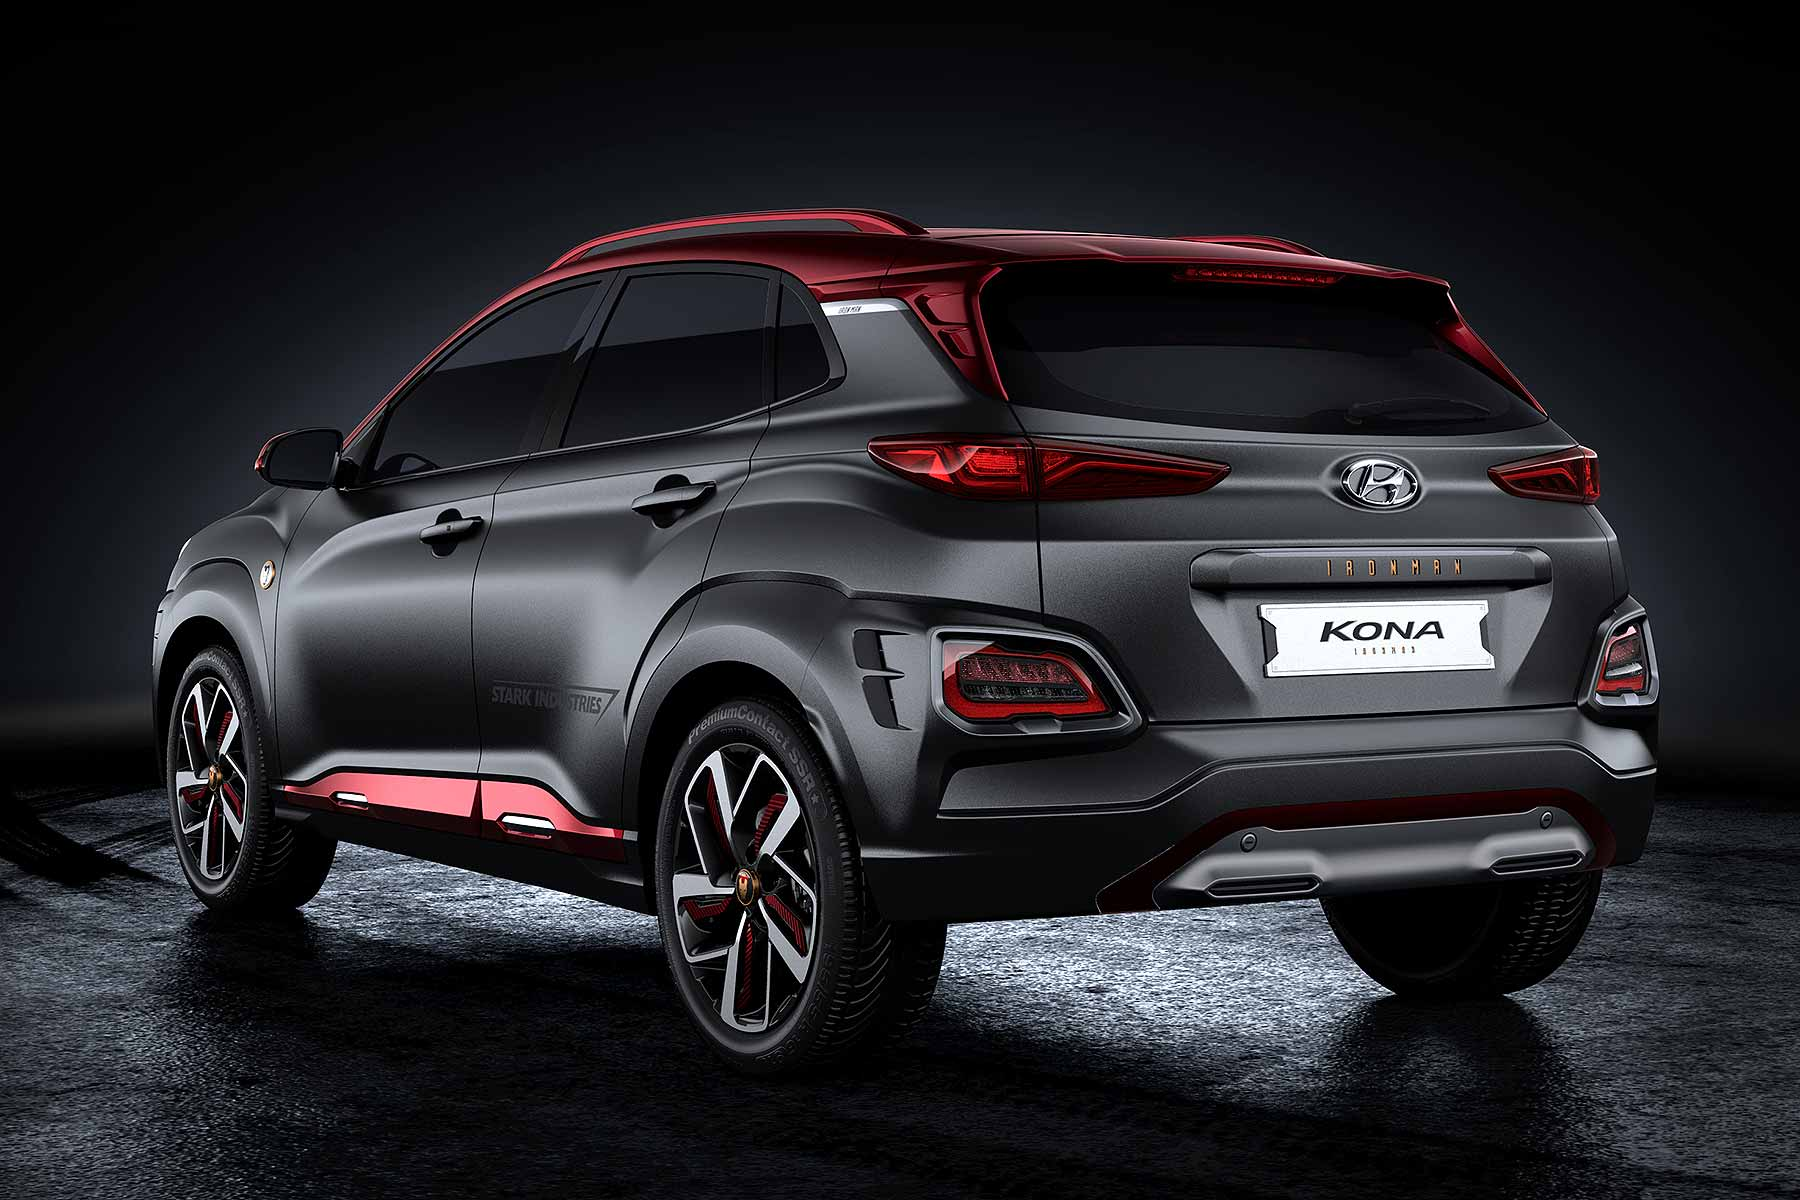 hyundai kona iron man edition revealed at comic con motoring research. Black Bedroom Furniture Sets. Home Design Ideas